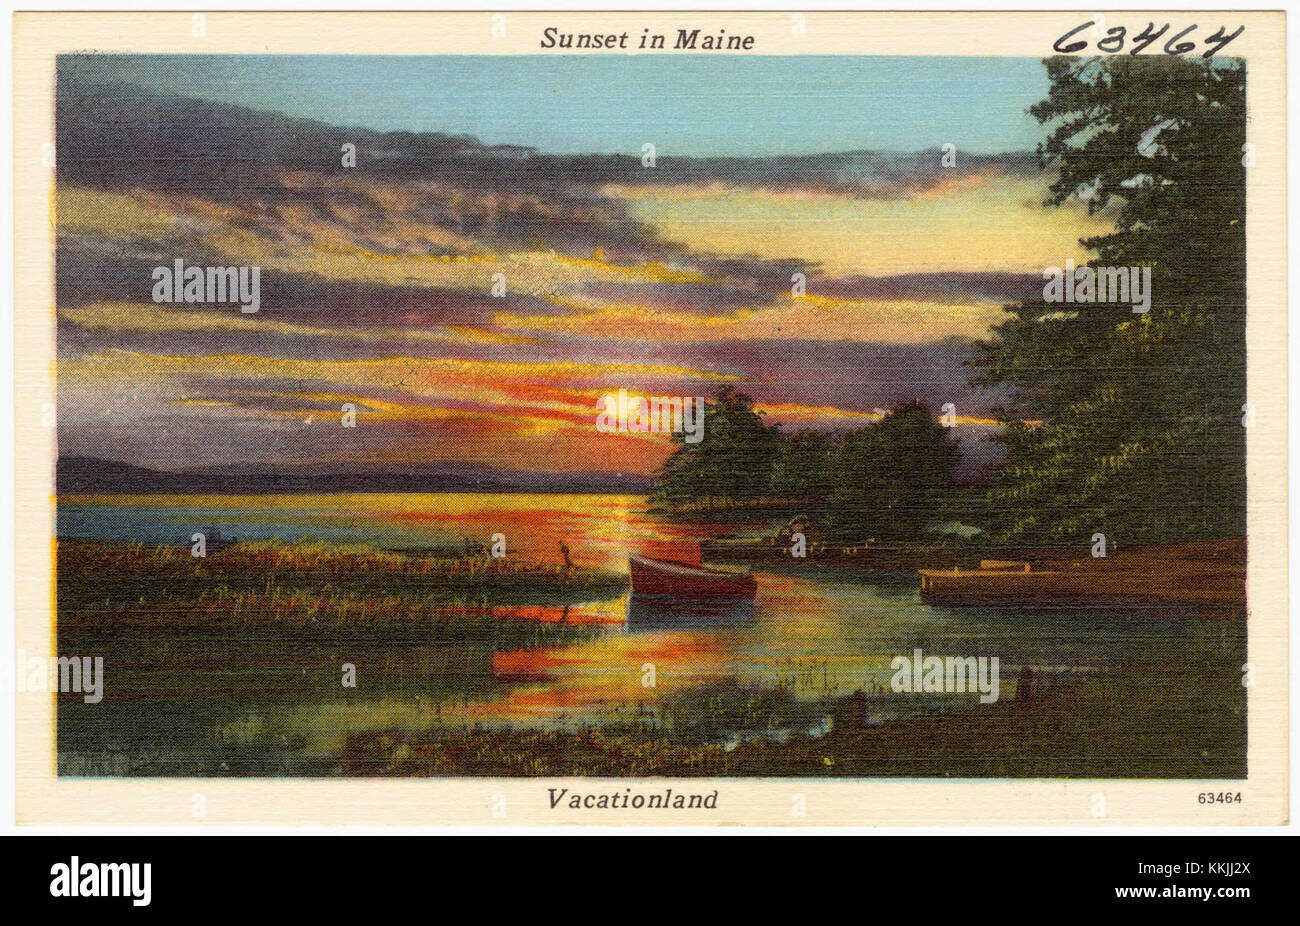 Sunset in Maine, Vacationland (63464) - Stock Image